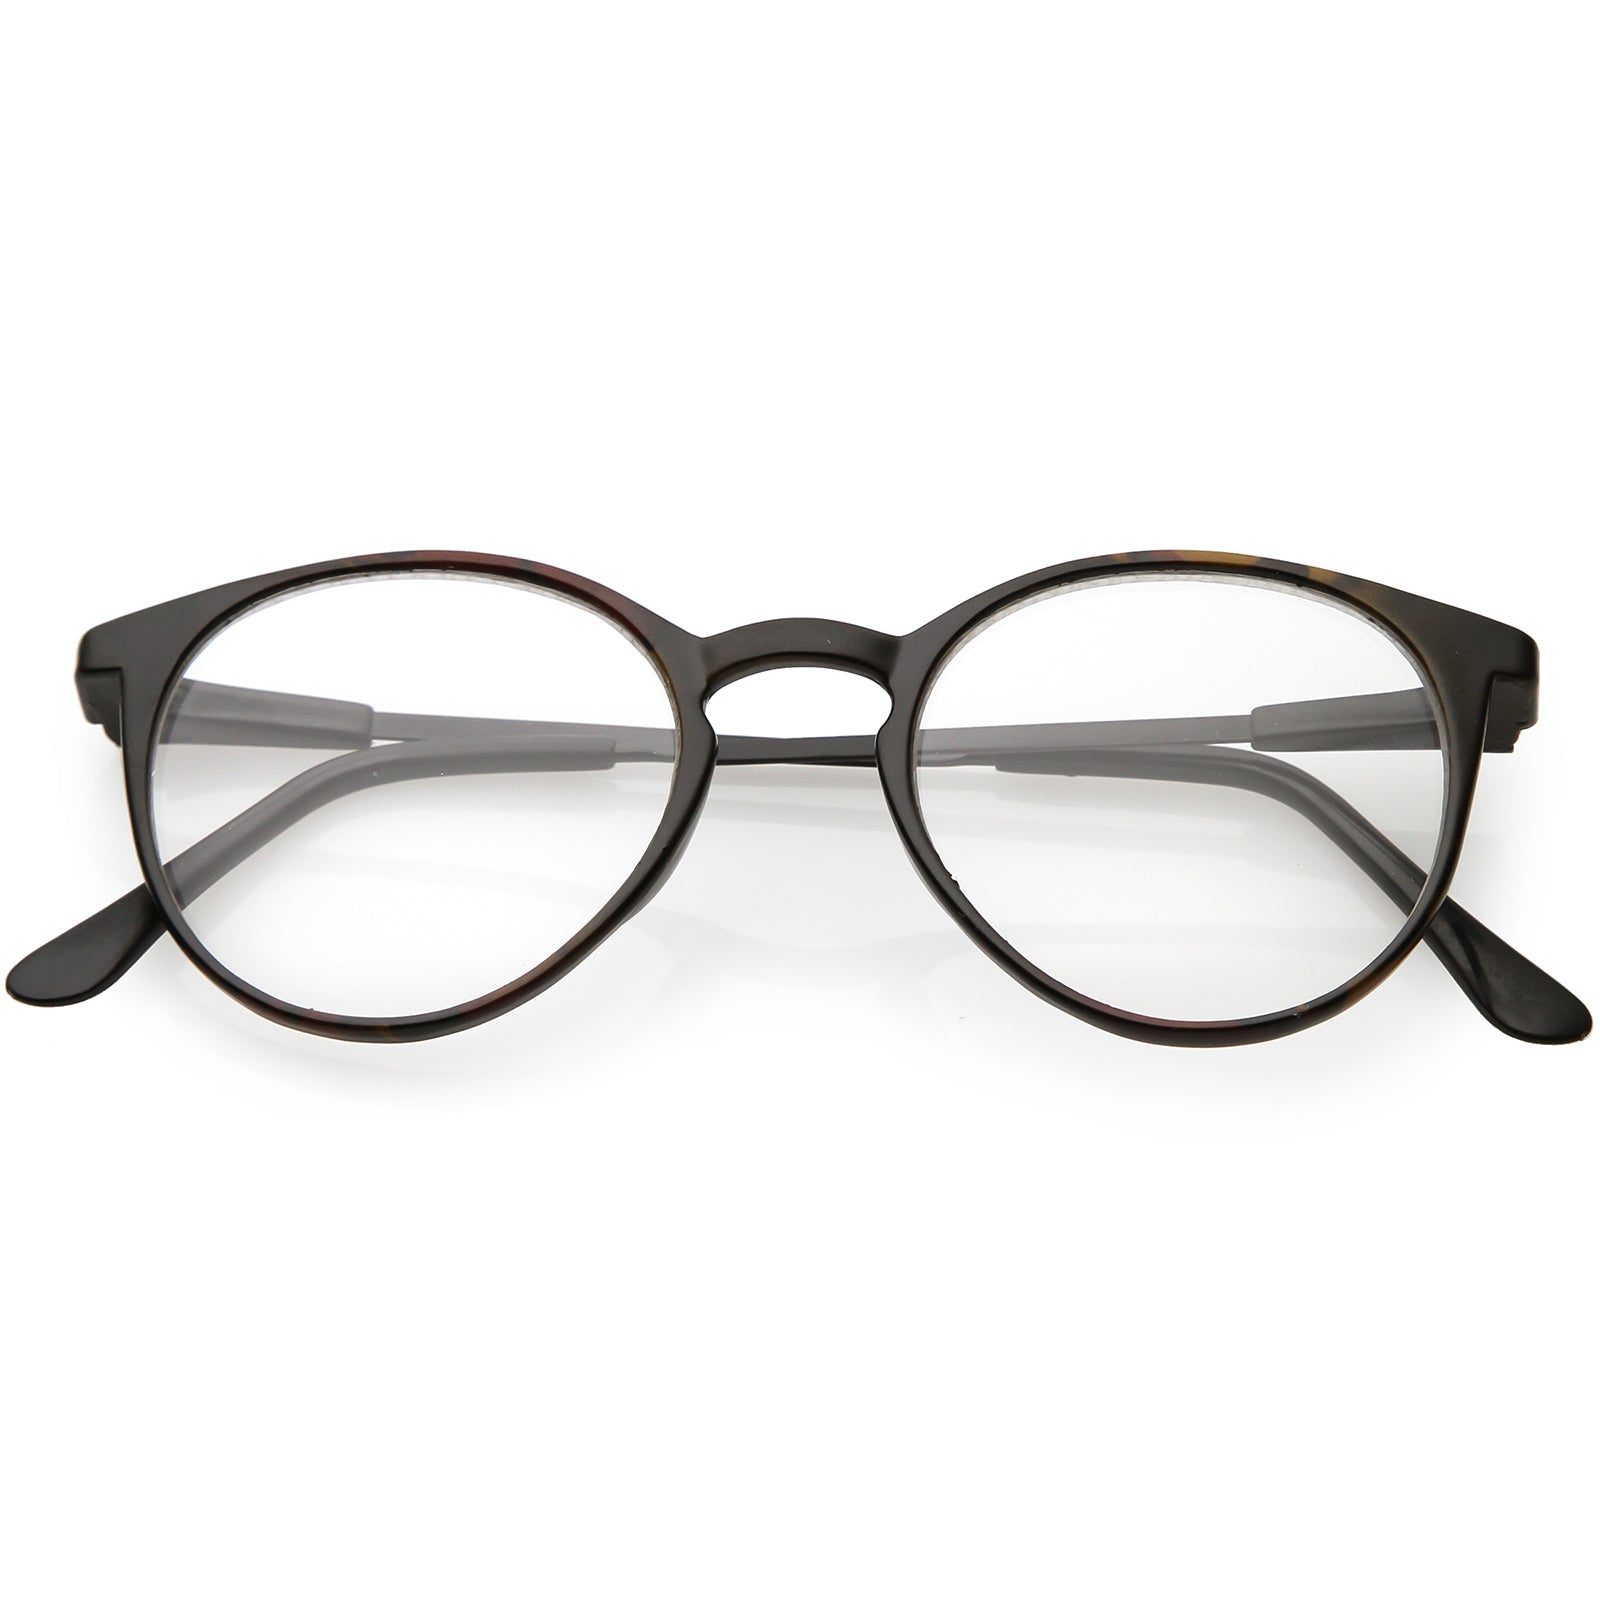 745c3e9025ad True Vintage Horn Rimmed Round Eyeglasses Metal Arms Clear Lens 46mm ...